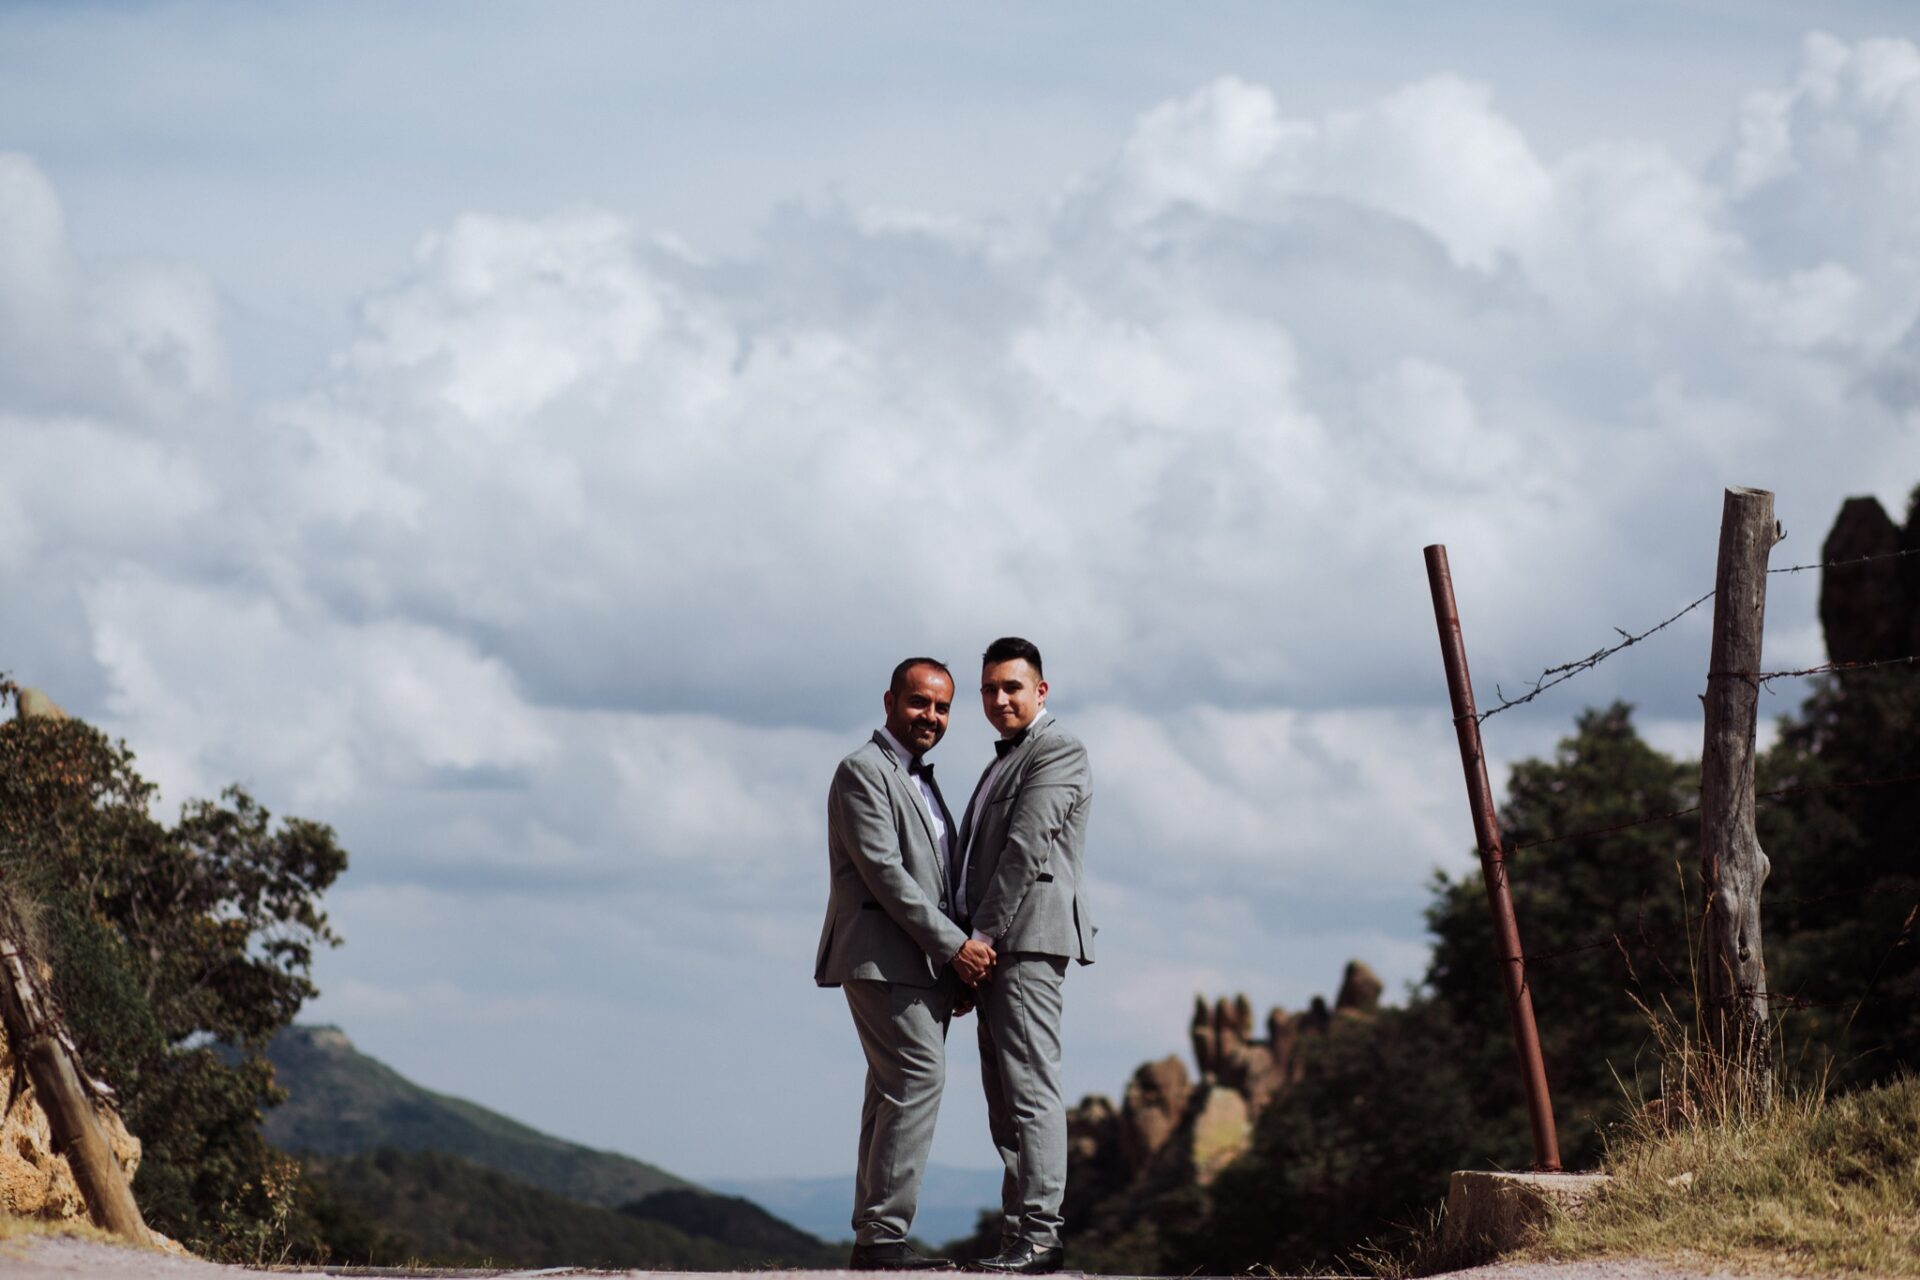 javier_noriega_fotografo_bodas_save_the_date_preboda_zacatecas_wedding_photographer4